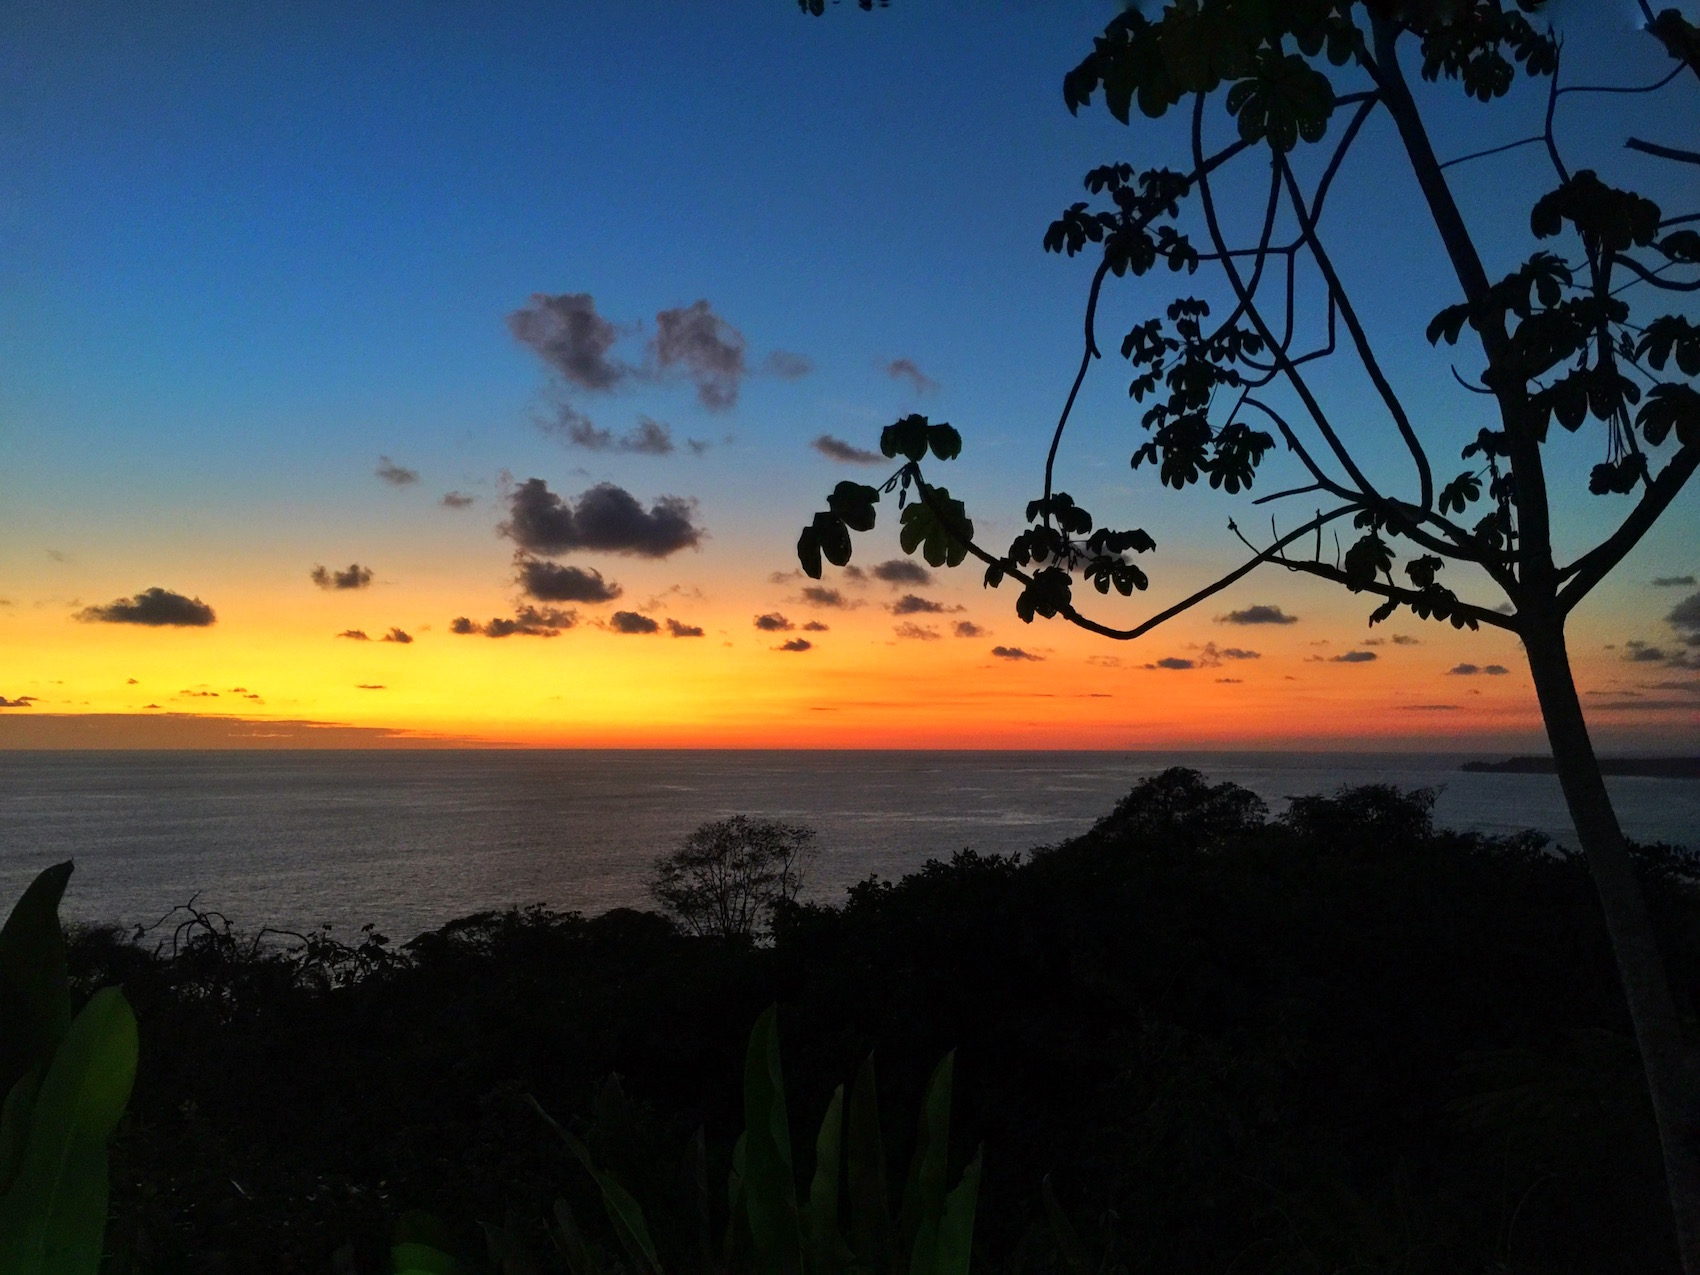 sunsets over the water in costa rica are gorgeous.   One of the best things to do in Costa Rica.   Tessa Juliette | Travel Where to Next http://travelwheretonext.com